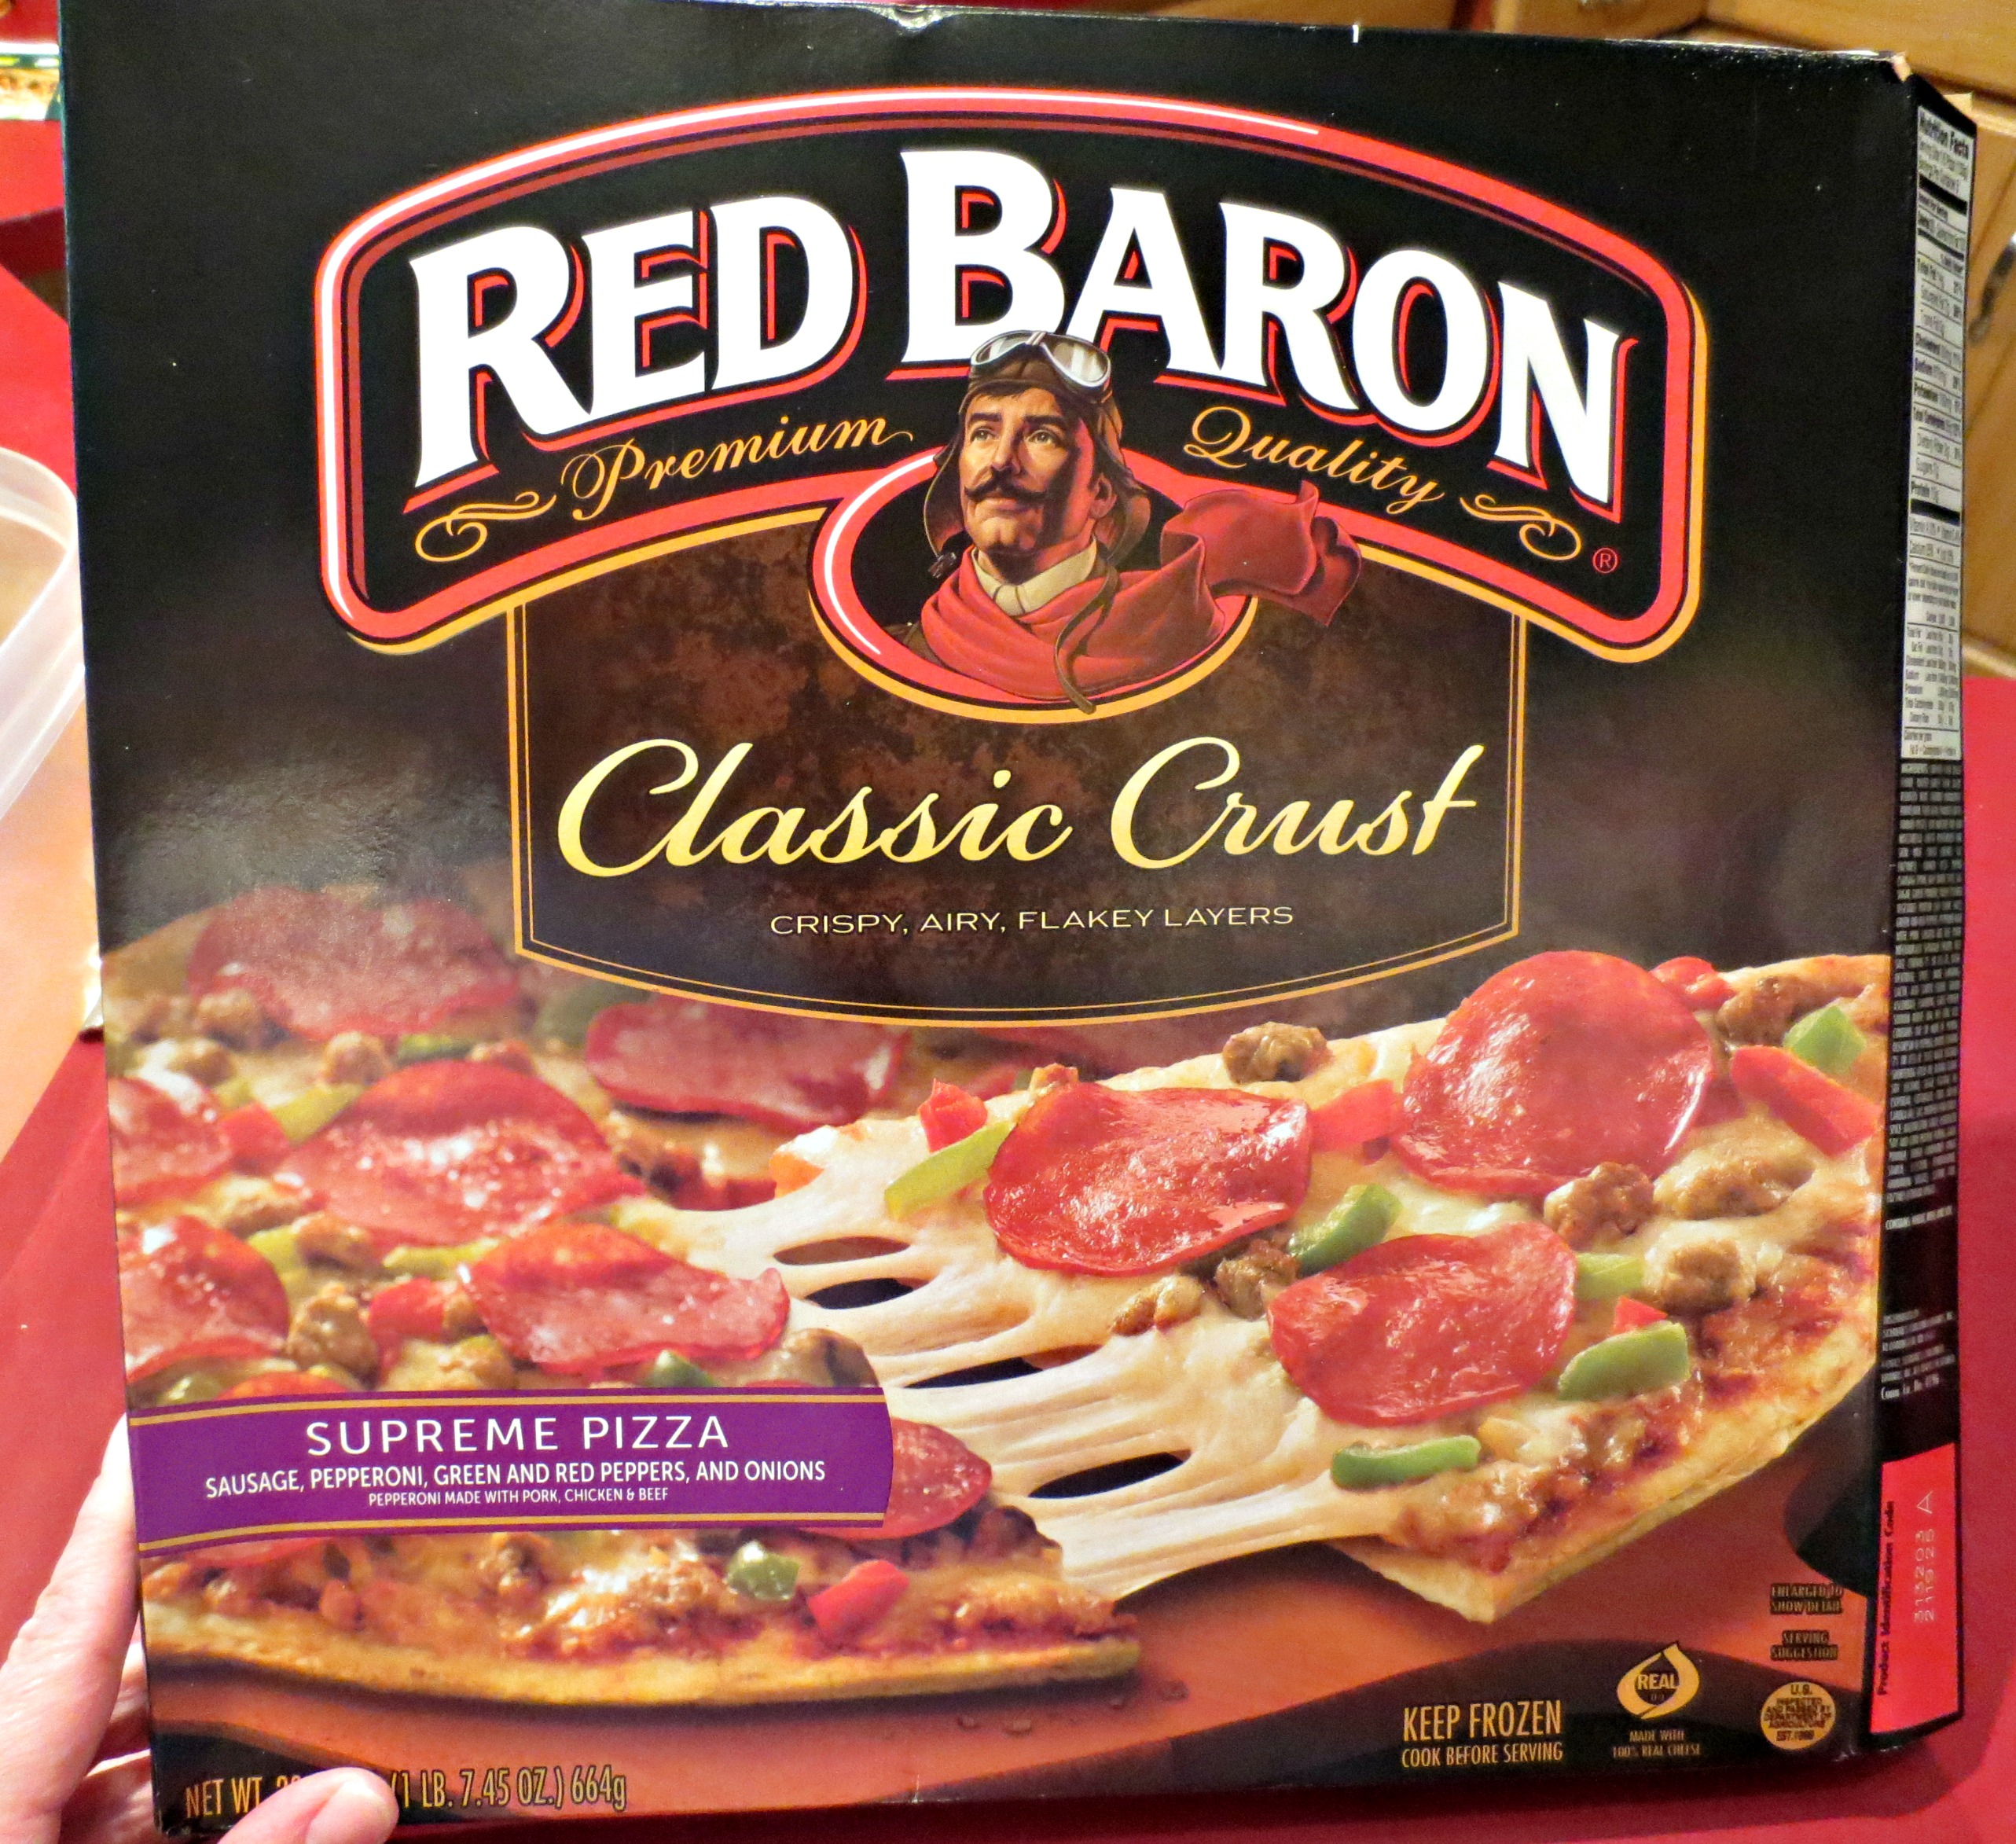 red baron pizza box images galleries with a bite. Black Bedroom Furniture Sets. Home Design Ideas